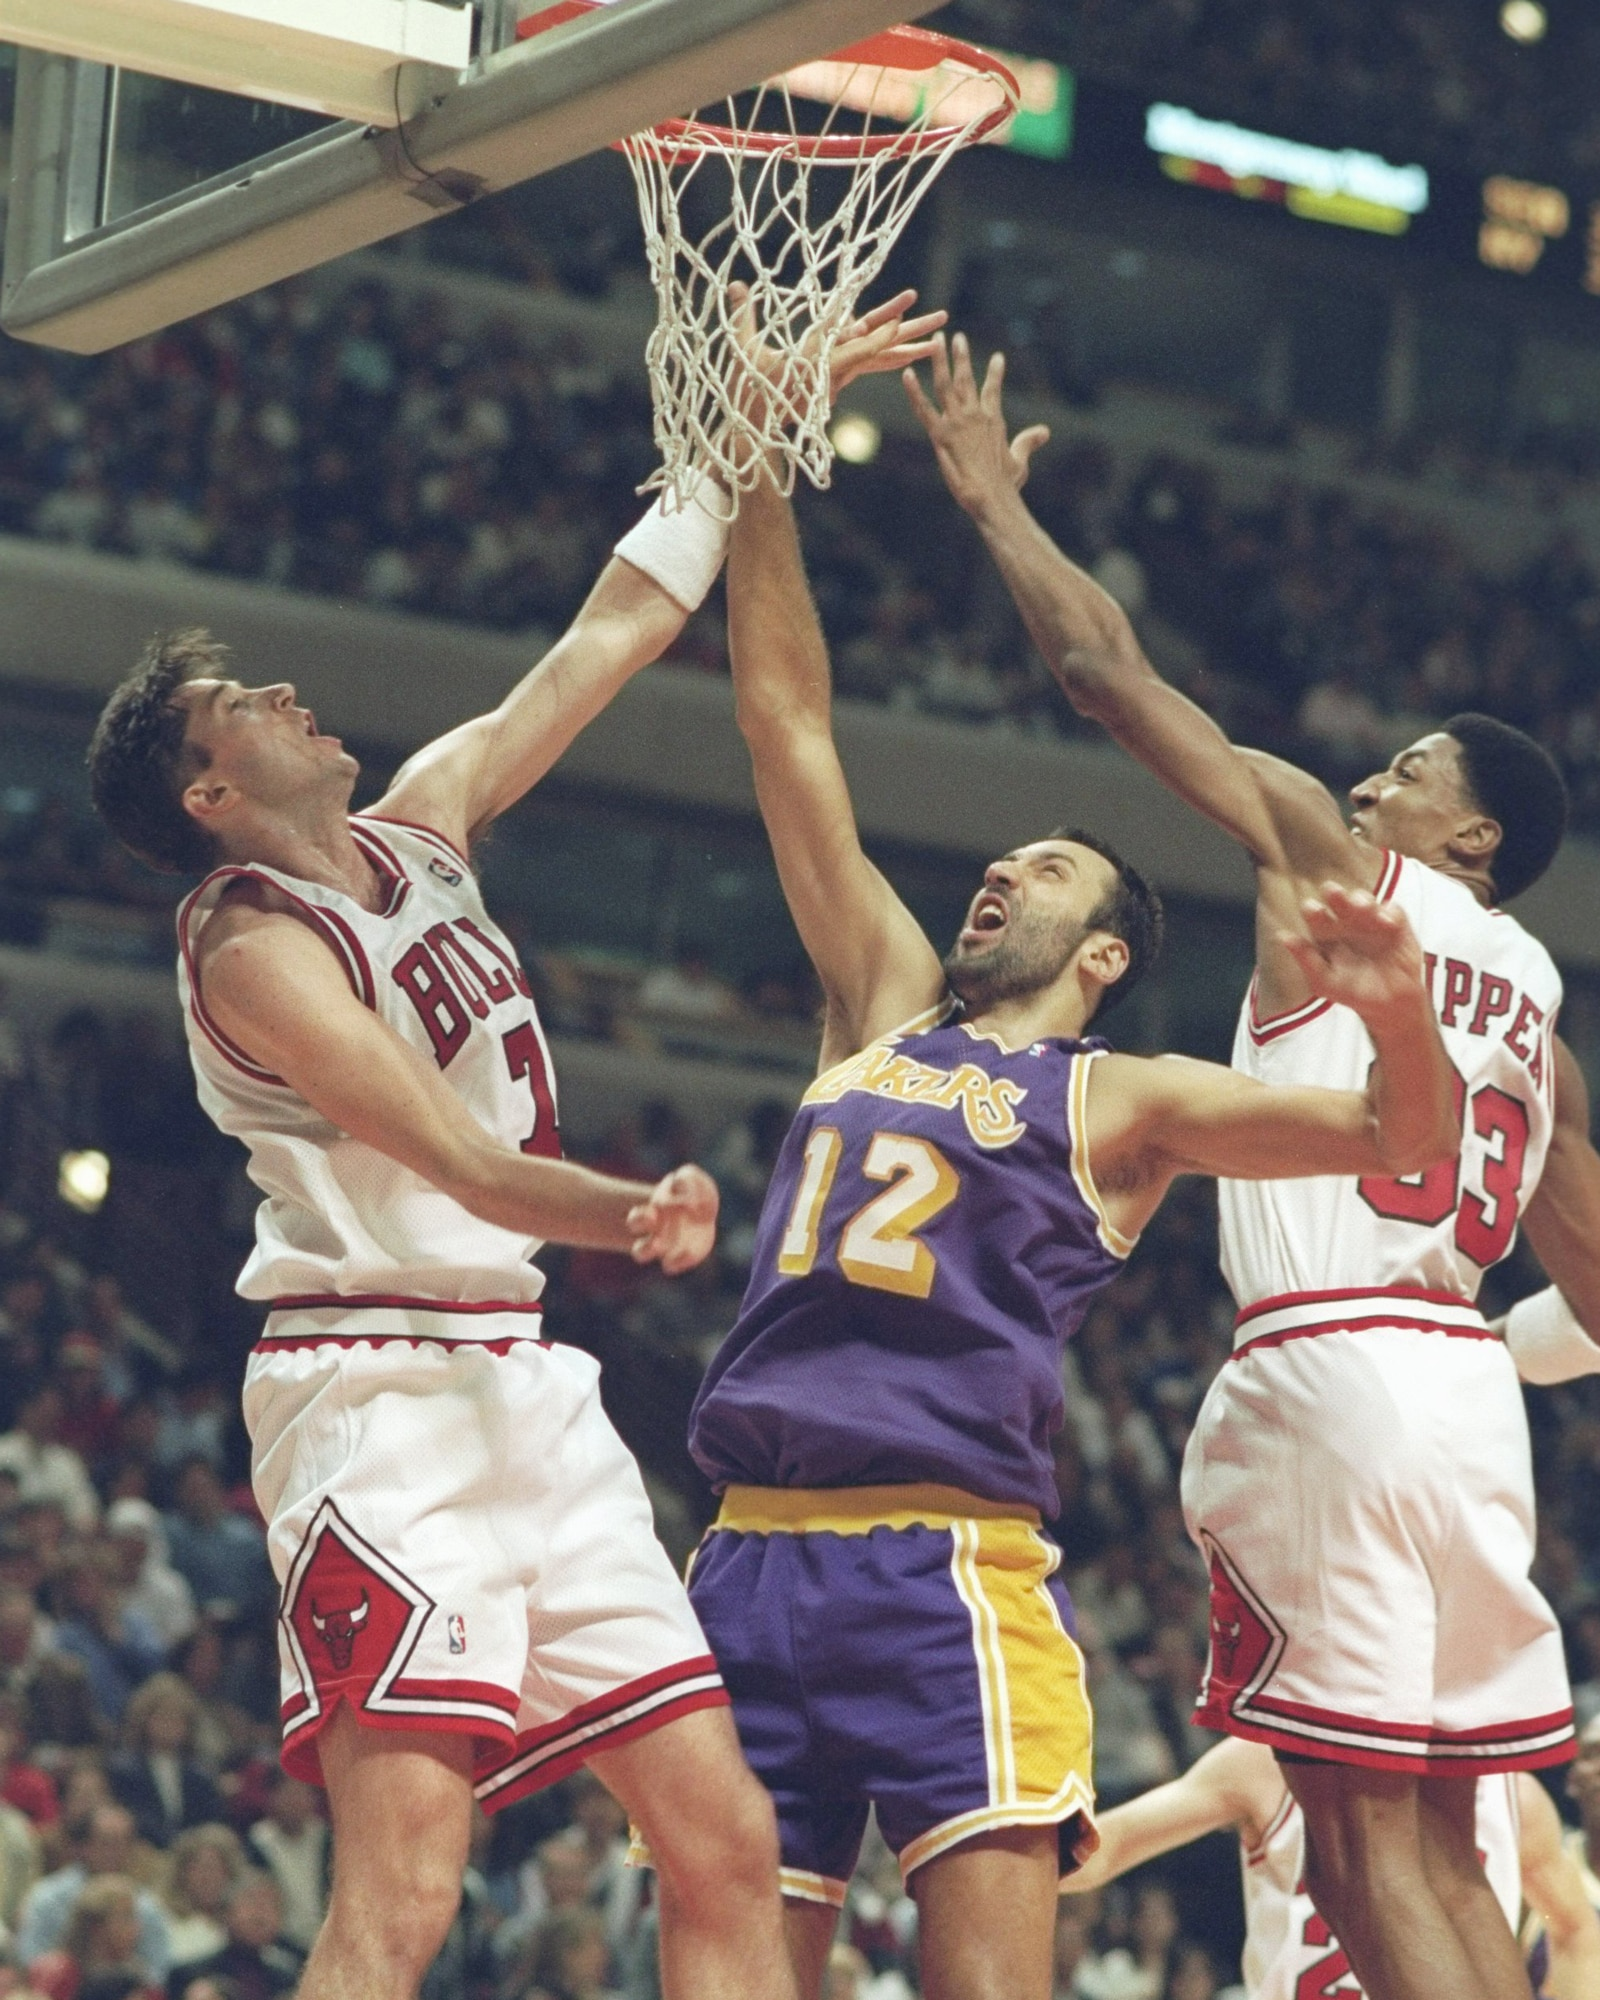 Kukoc and Pippen battling against the Lakers' Vlade Divac